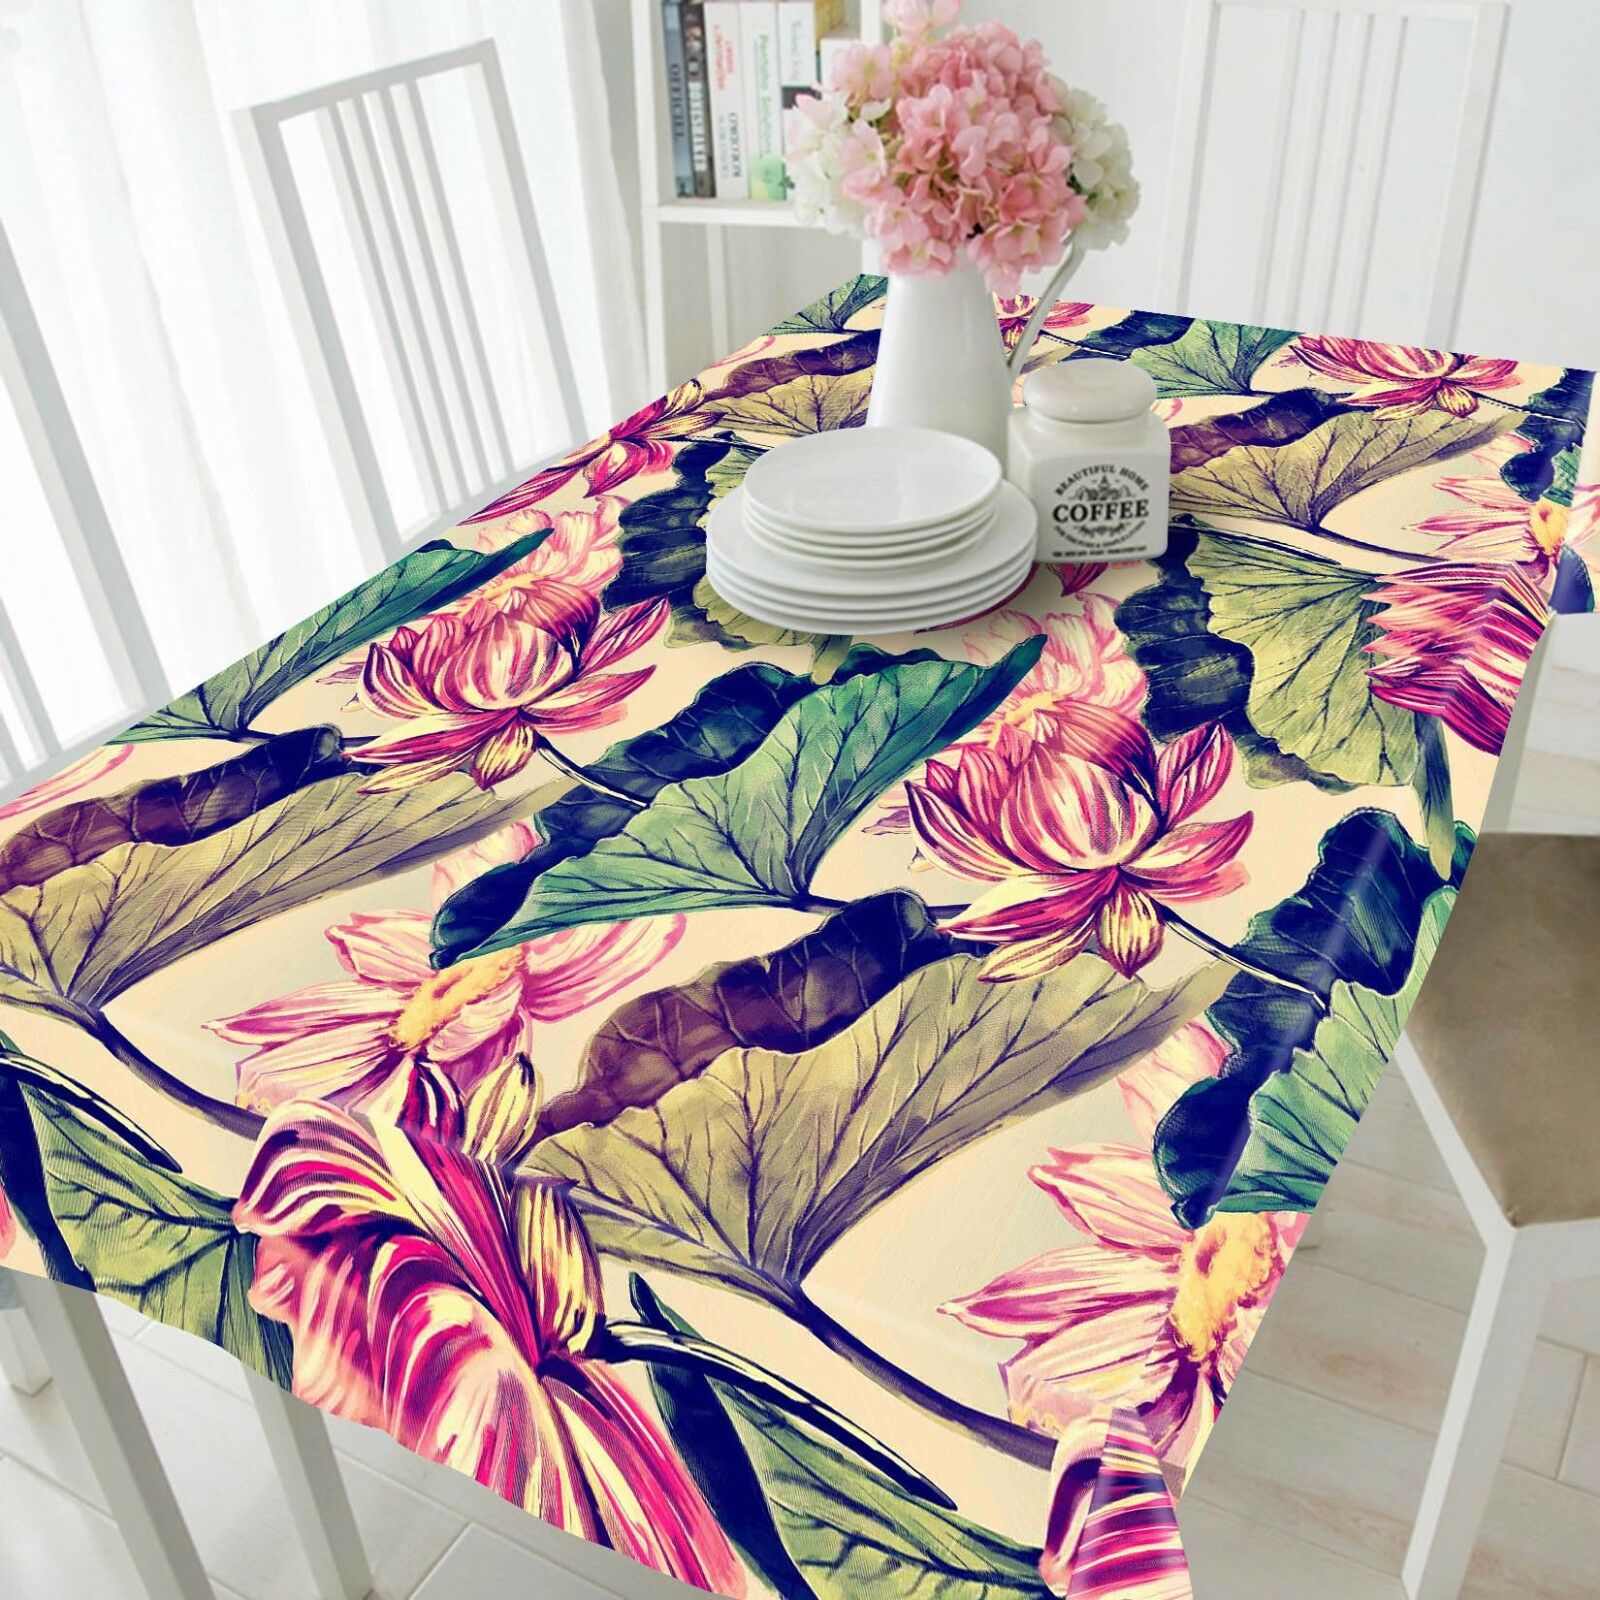 3D Paint Lotu Tablecloth Table Cover Cloth Birthday Party AJ WALLPAPER UK Lemon